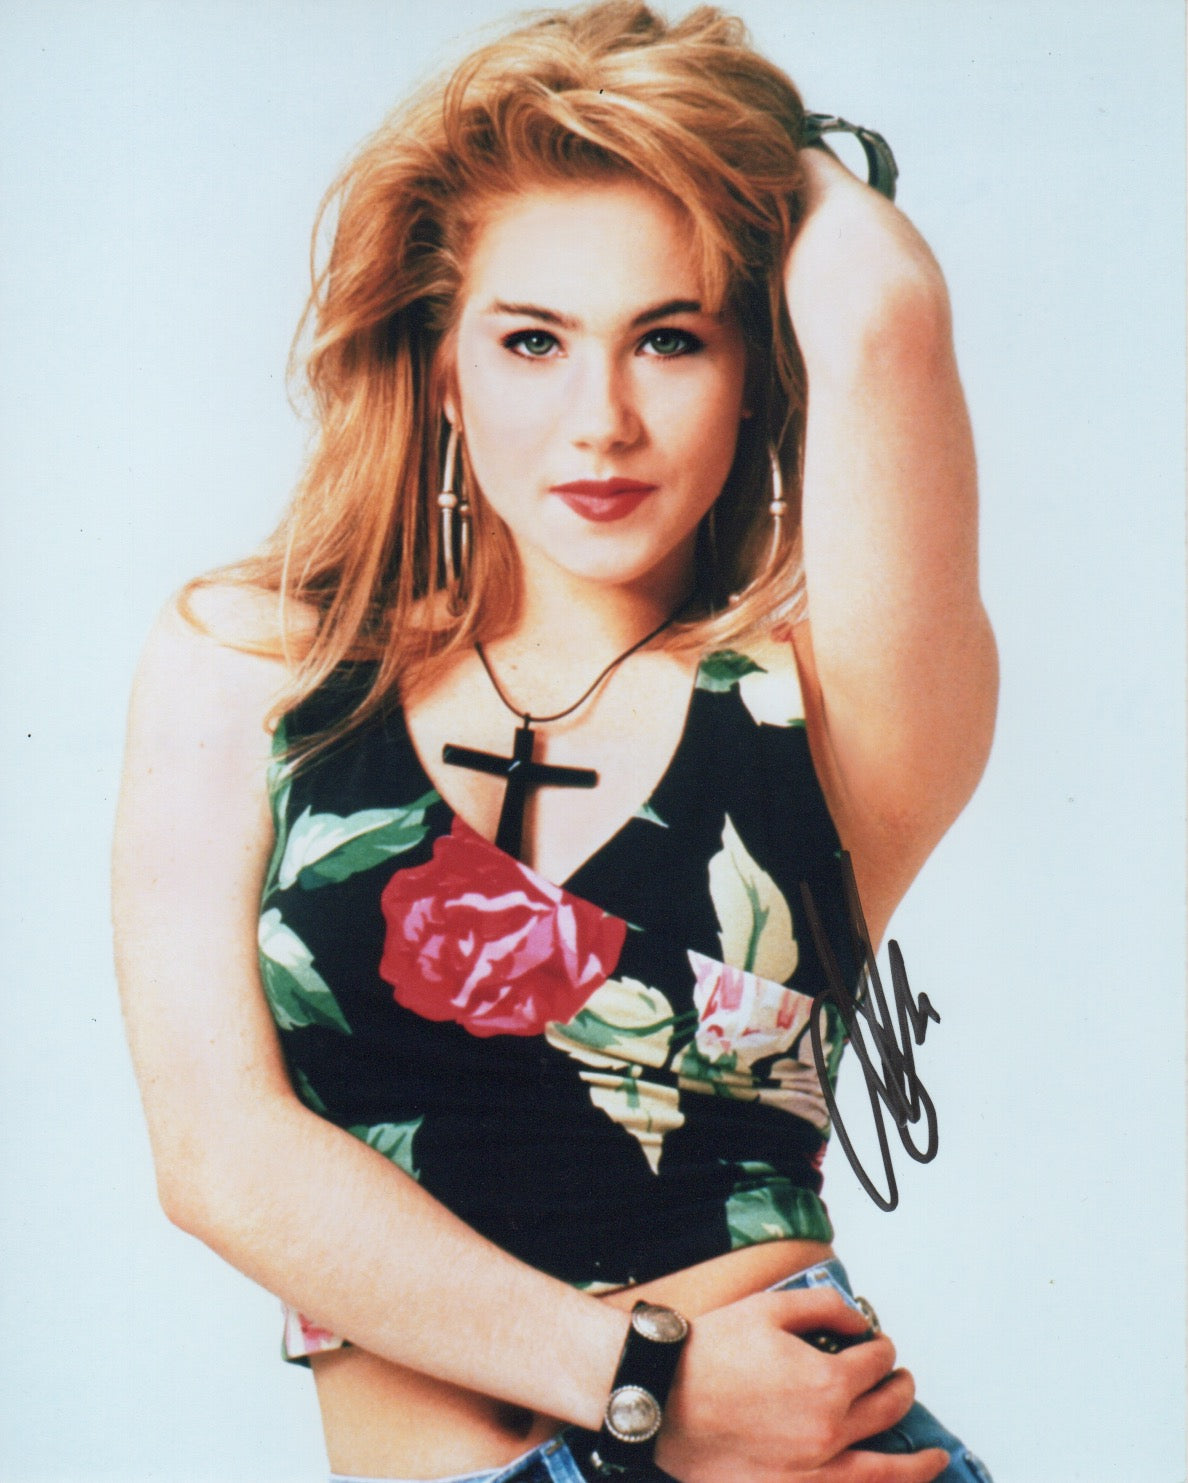 Christina Applegate Sexy Signed Autograph 8x10 Photo #3